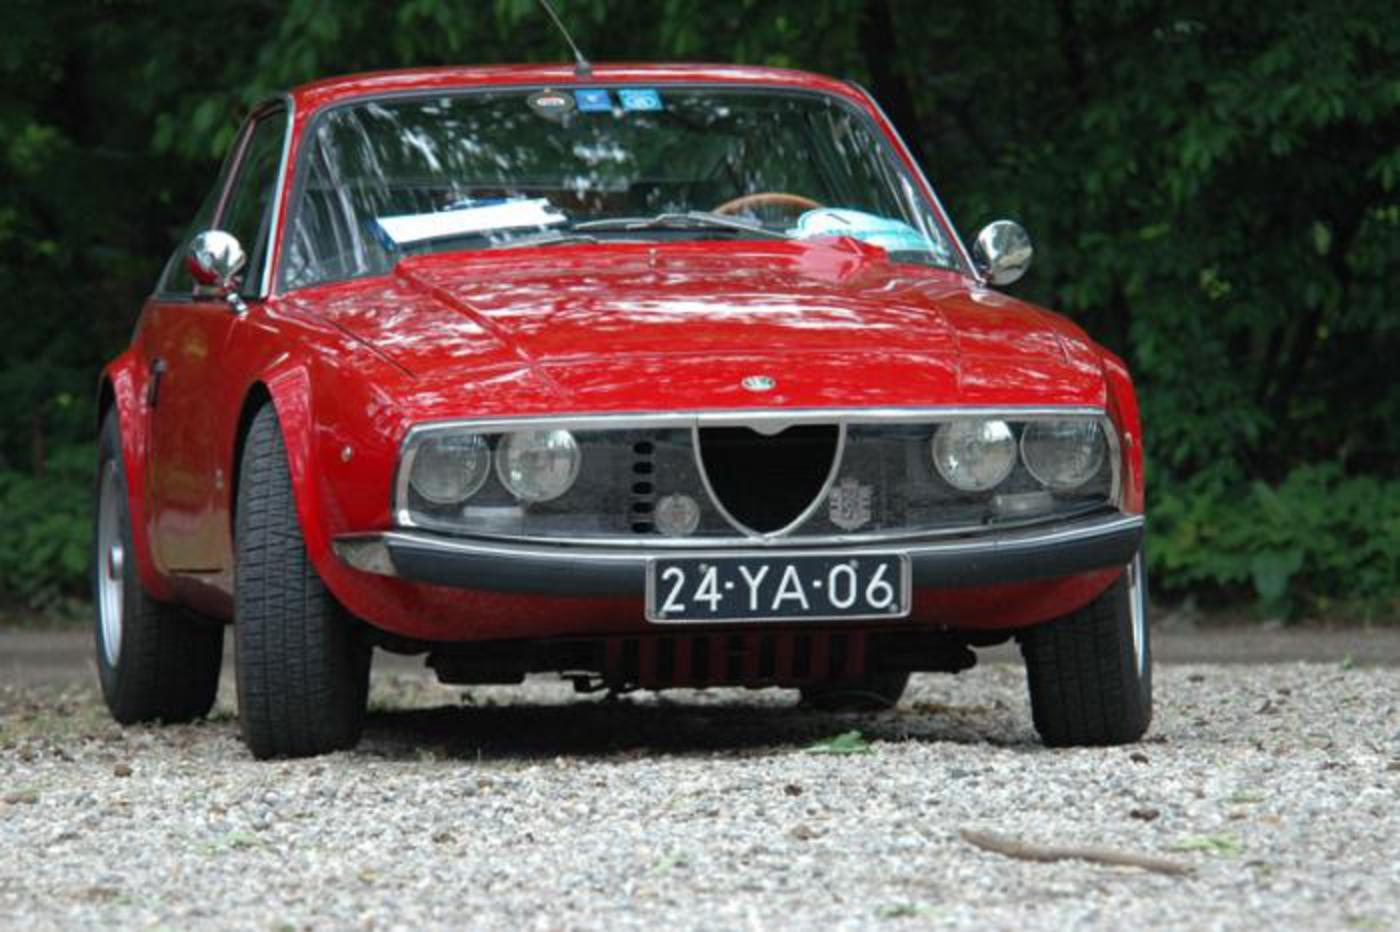 Alfa Romeo Giulia Nuova Super 1600 - cars catalog, specs, features, photos,